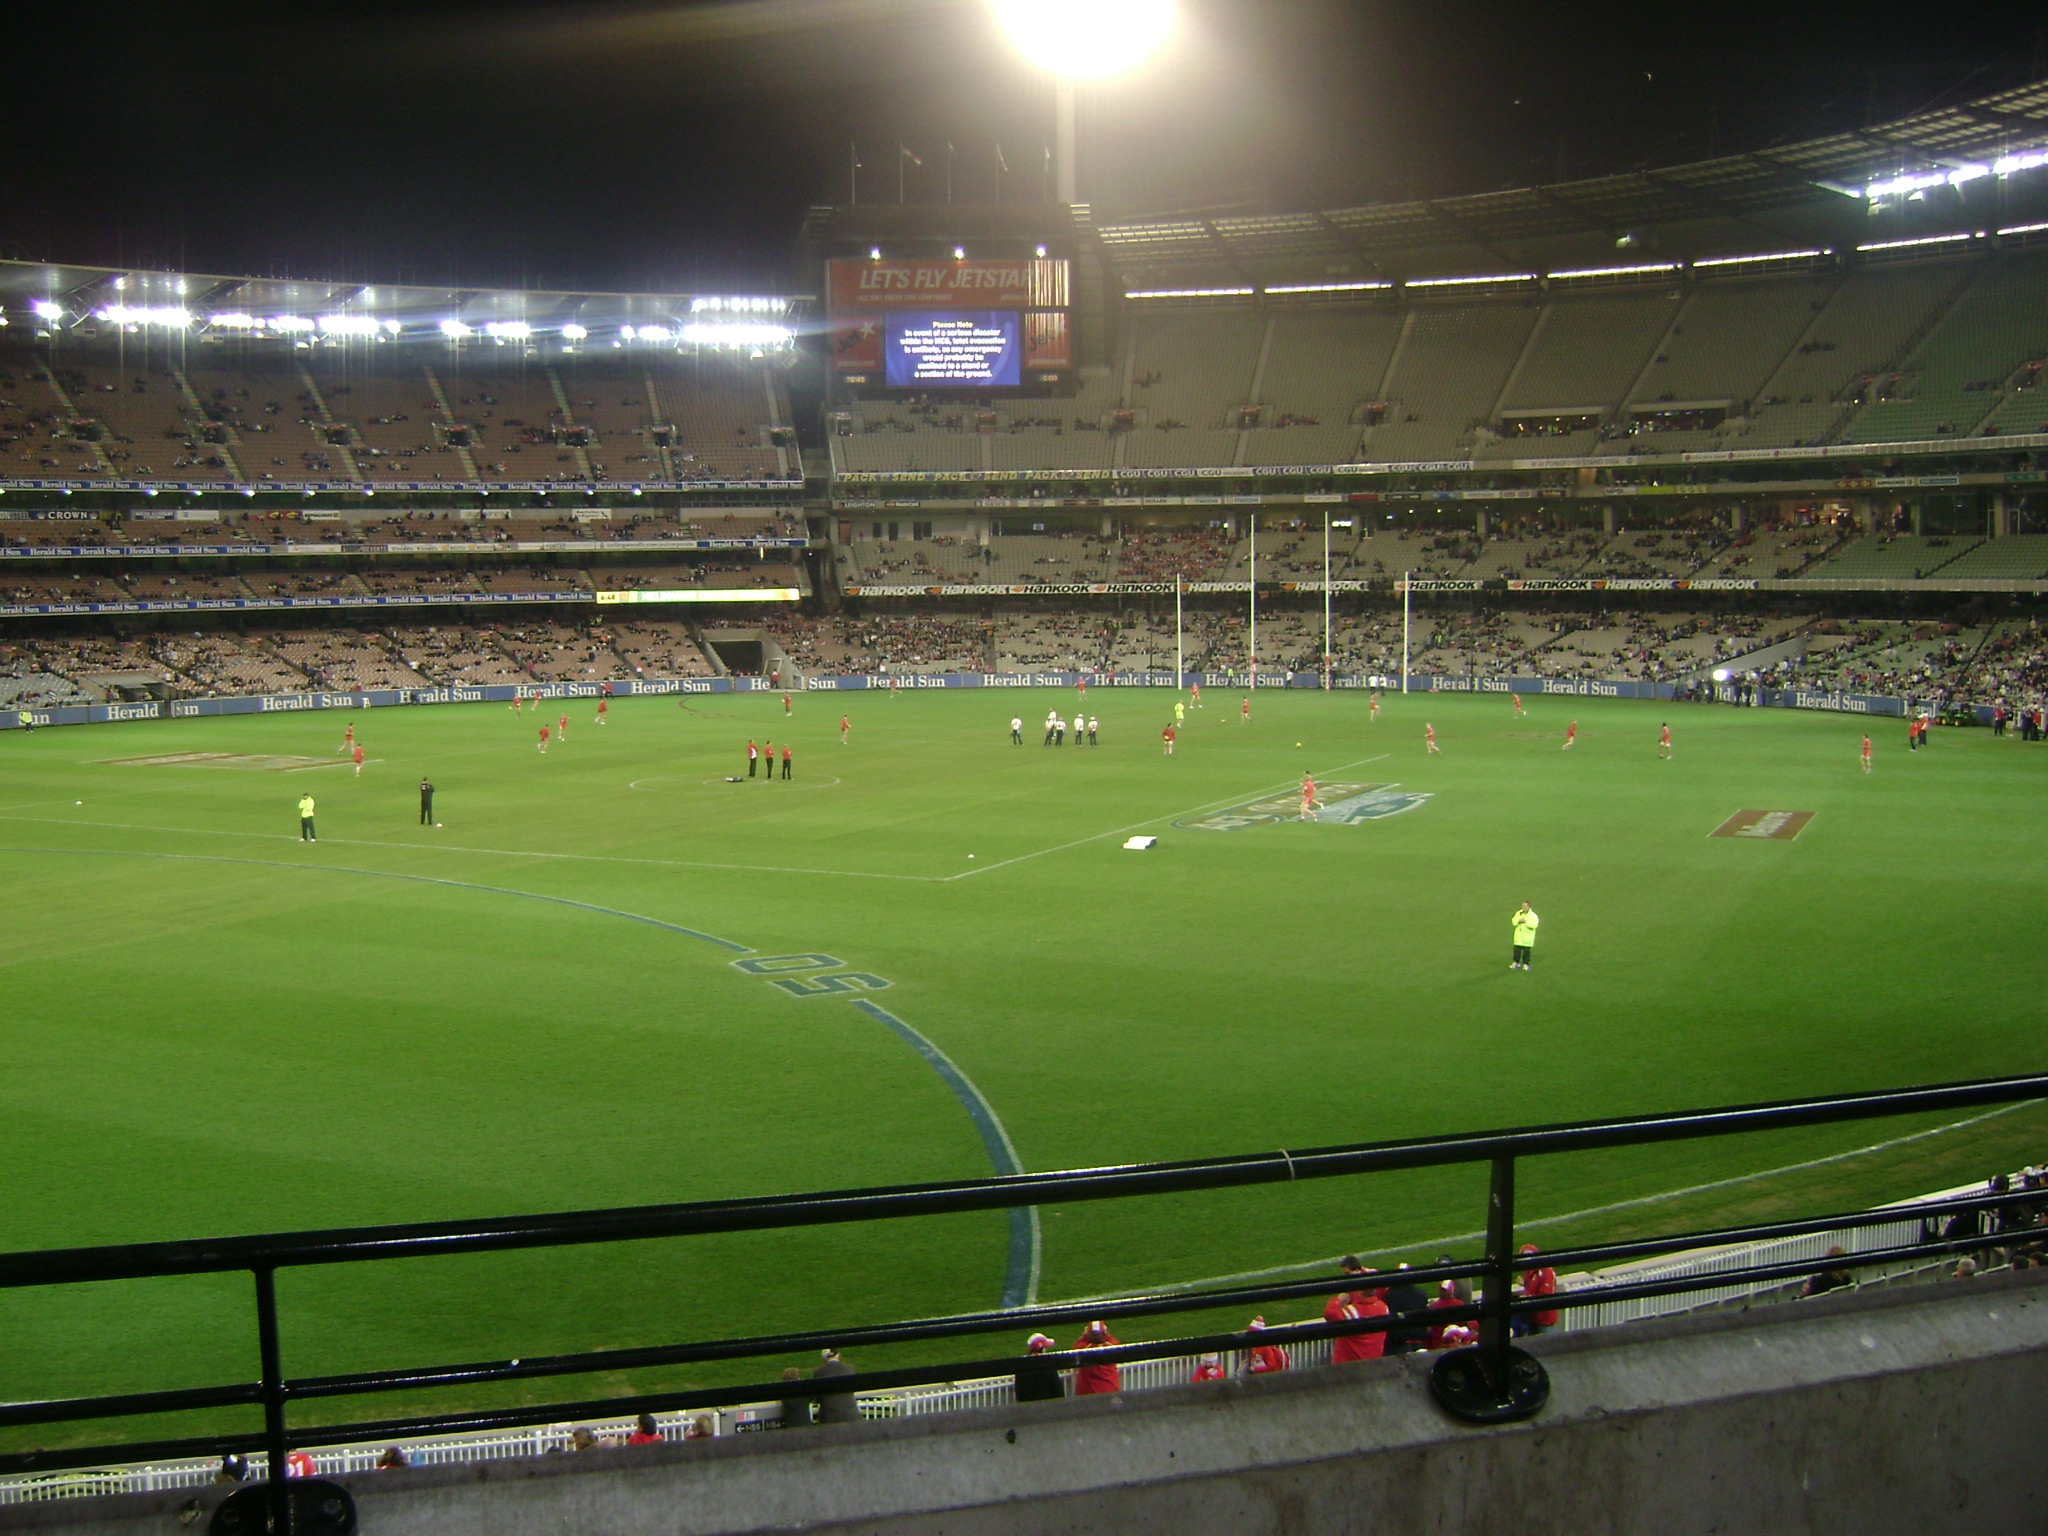 Description Melbourne Cricket Ground 2007 (00197).JPG